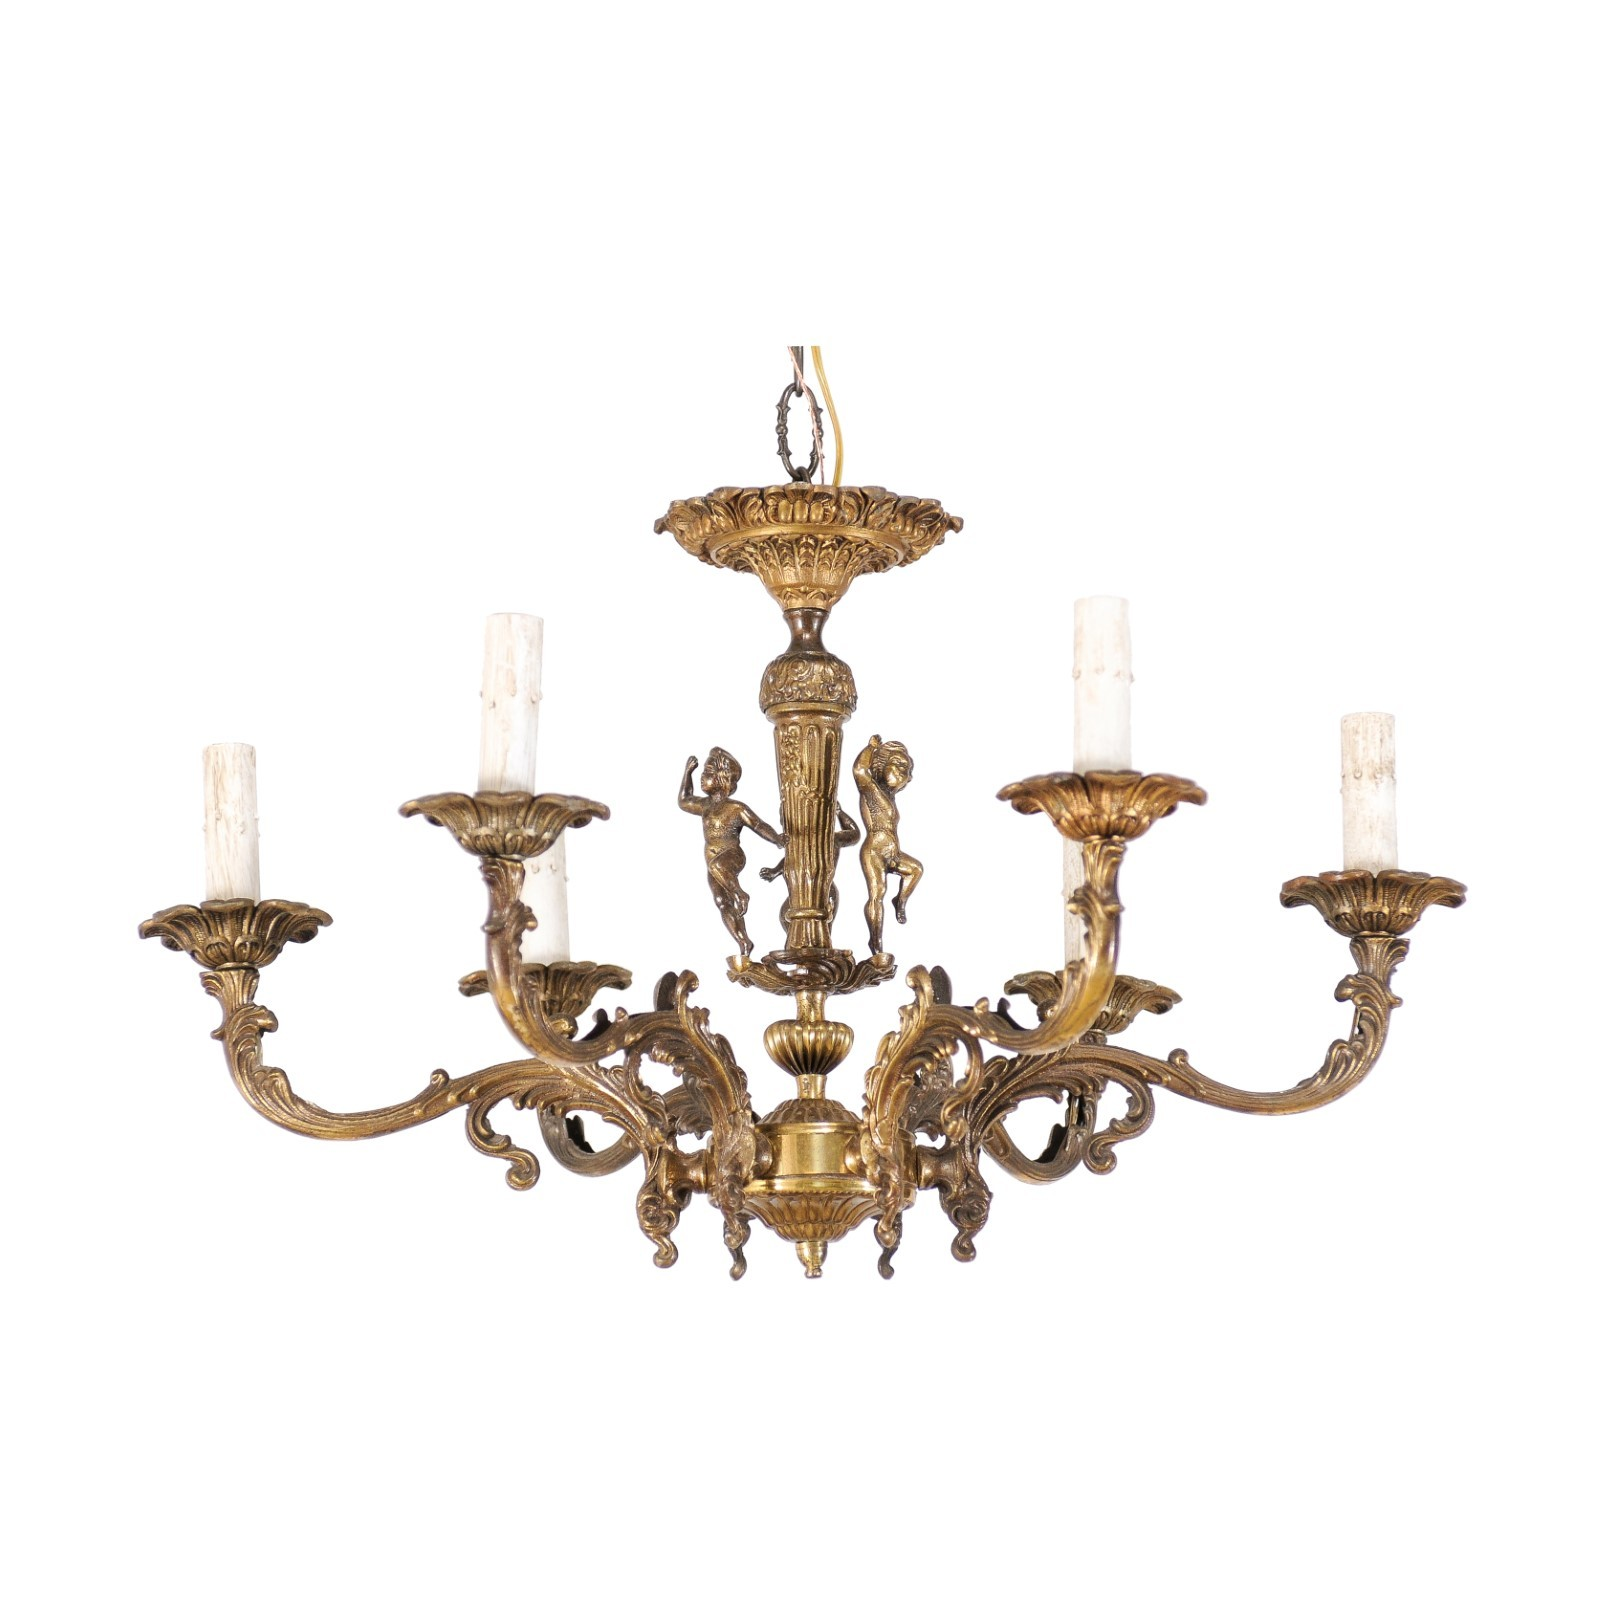 French Brass Chandelier w/ Putti Figures